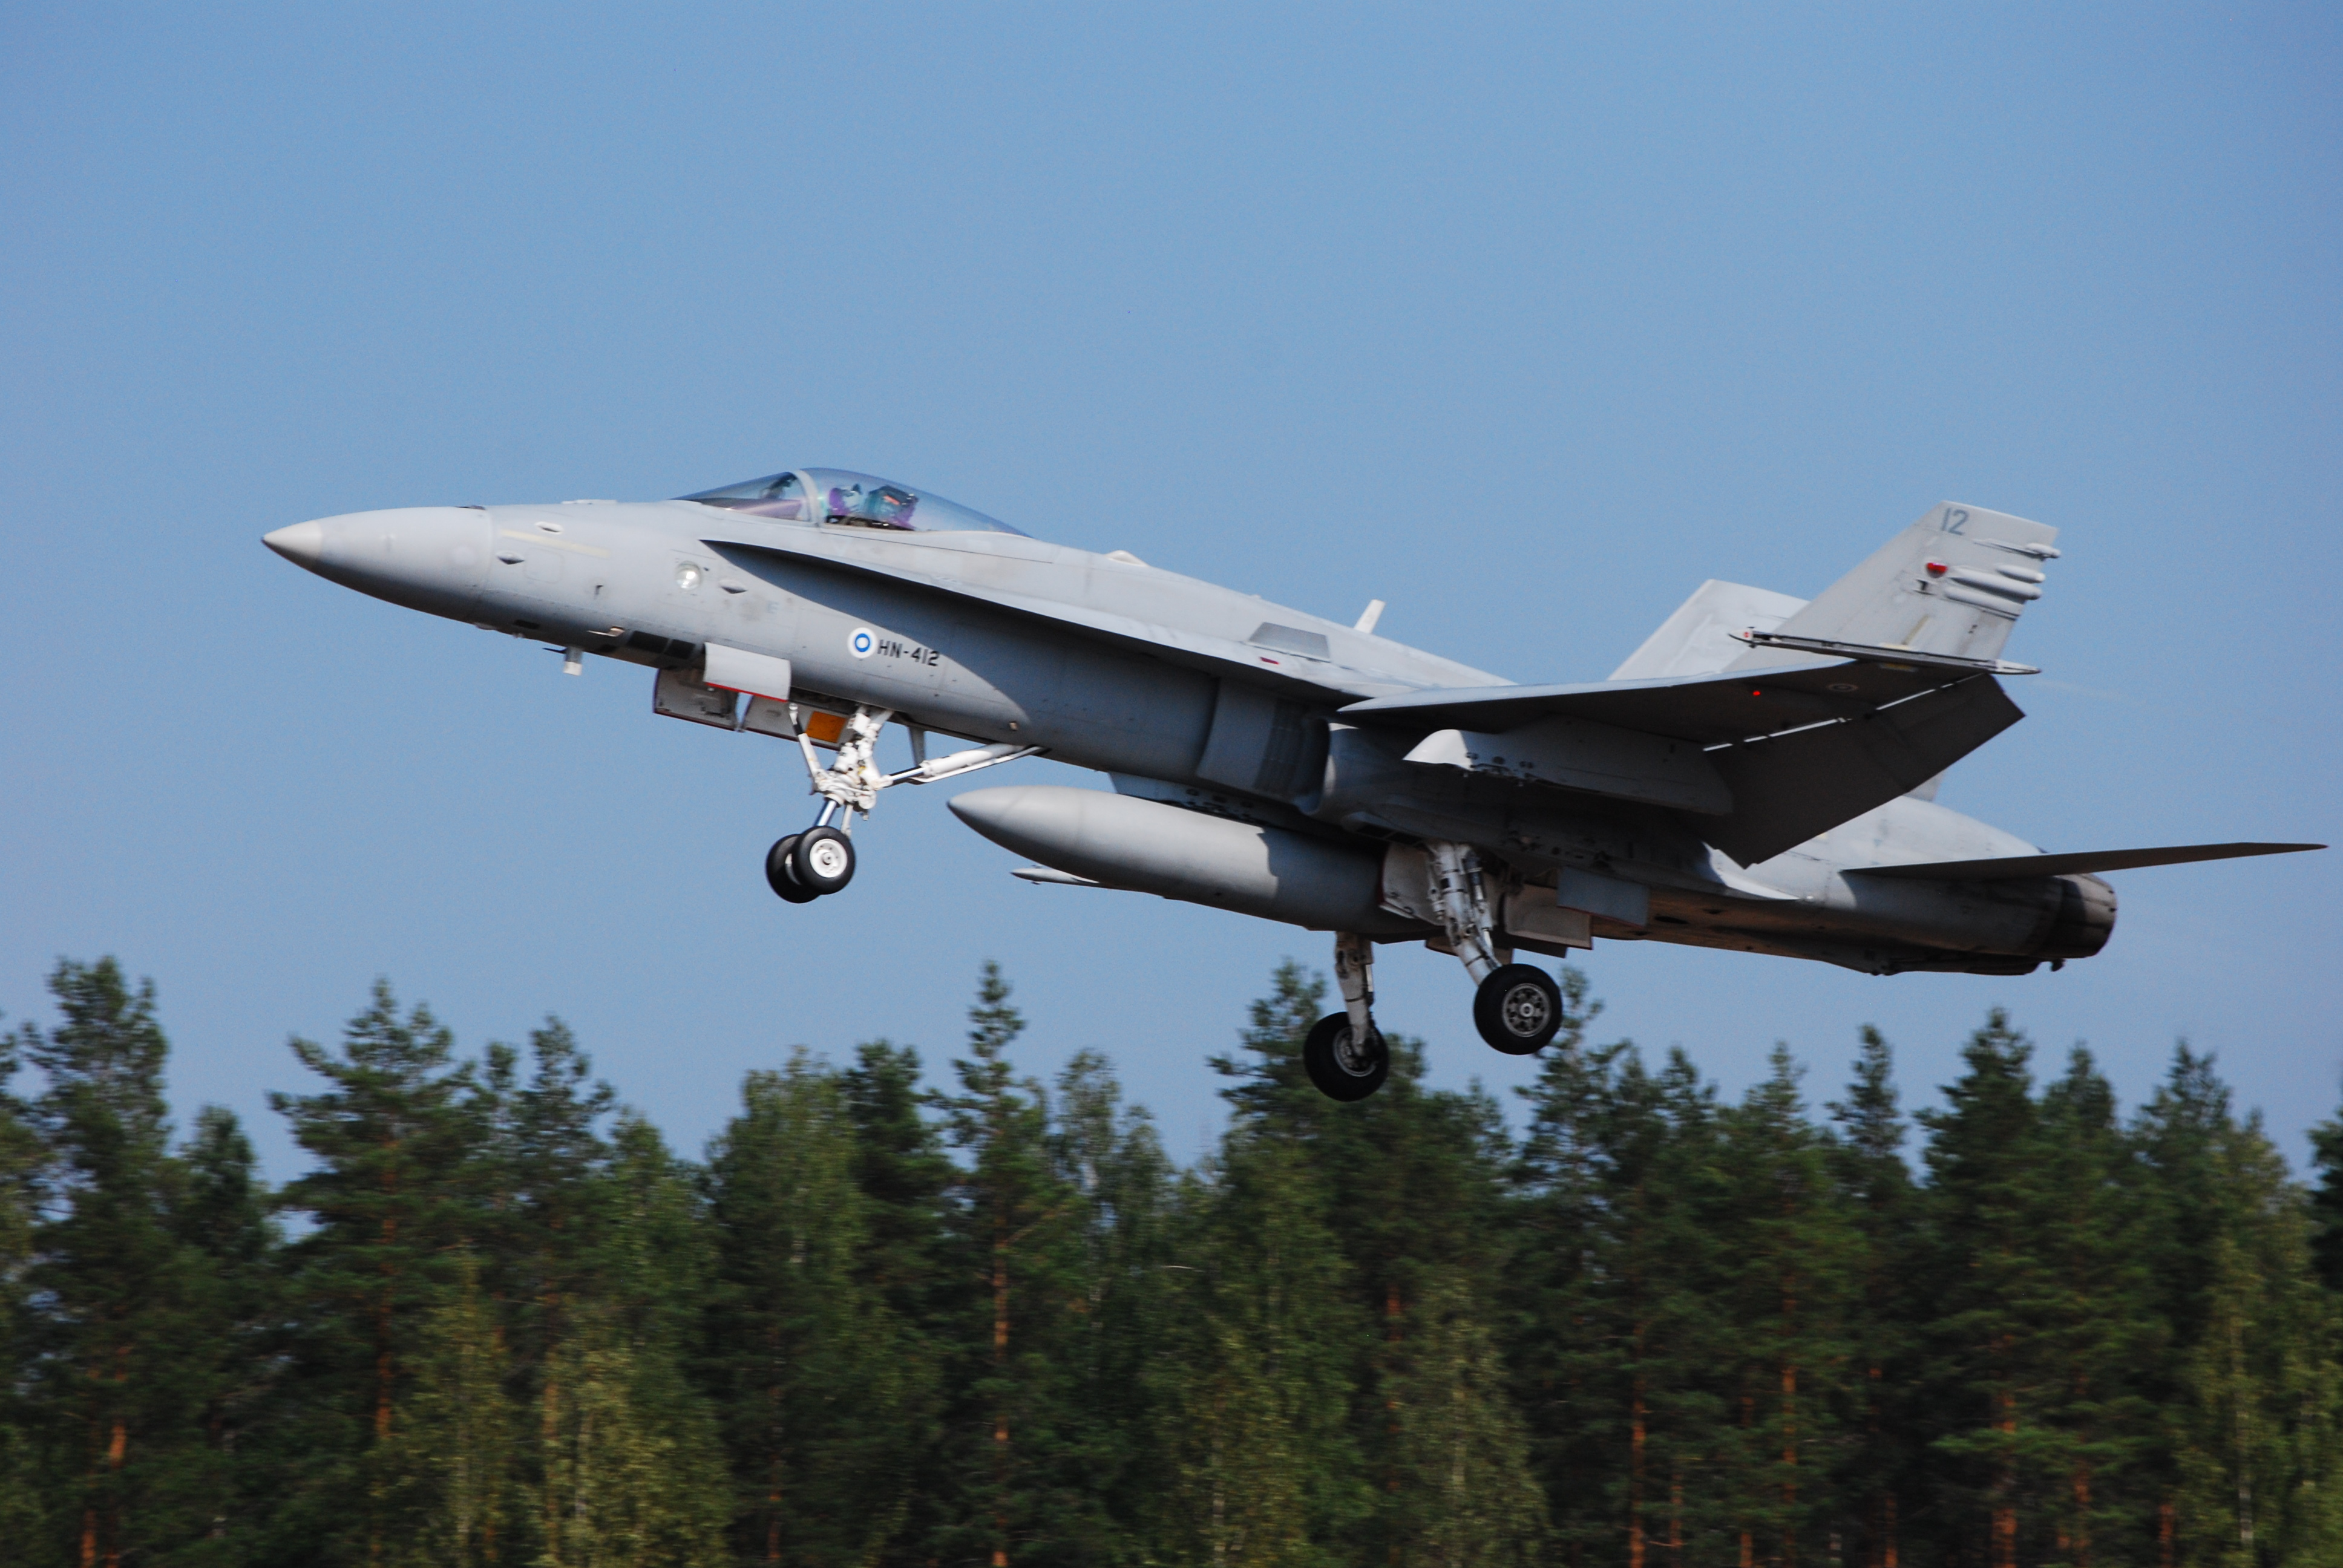 File:Finnish Air Force...